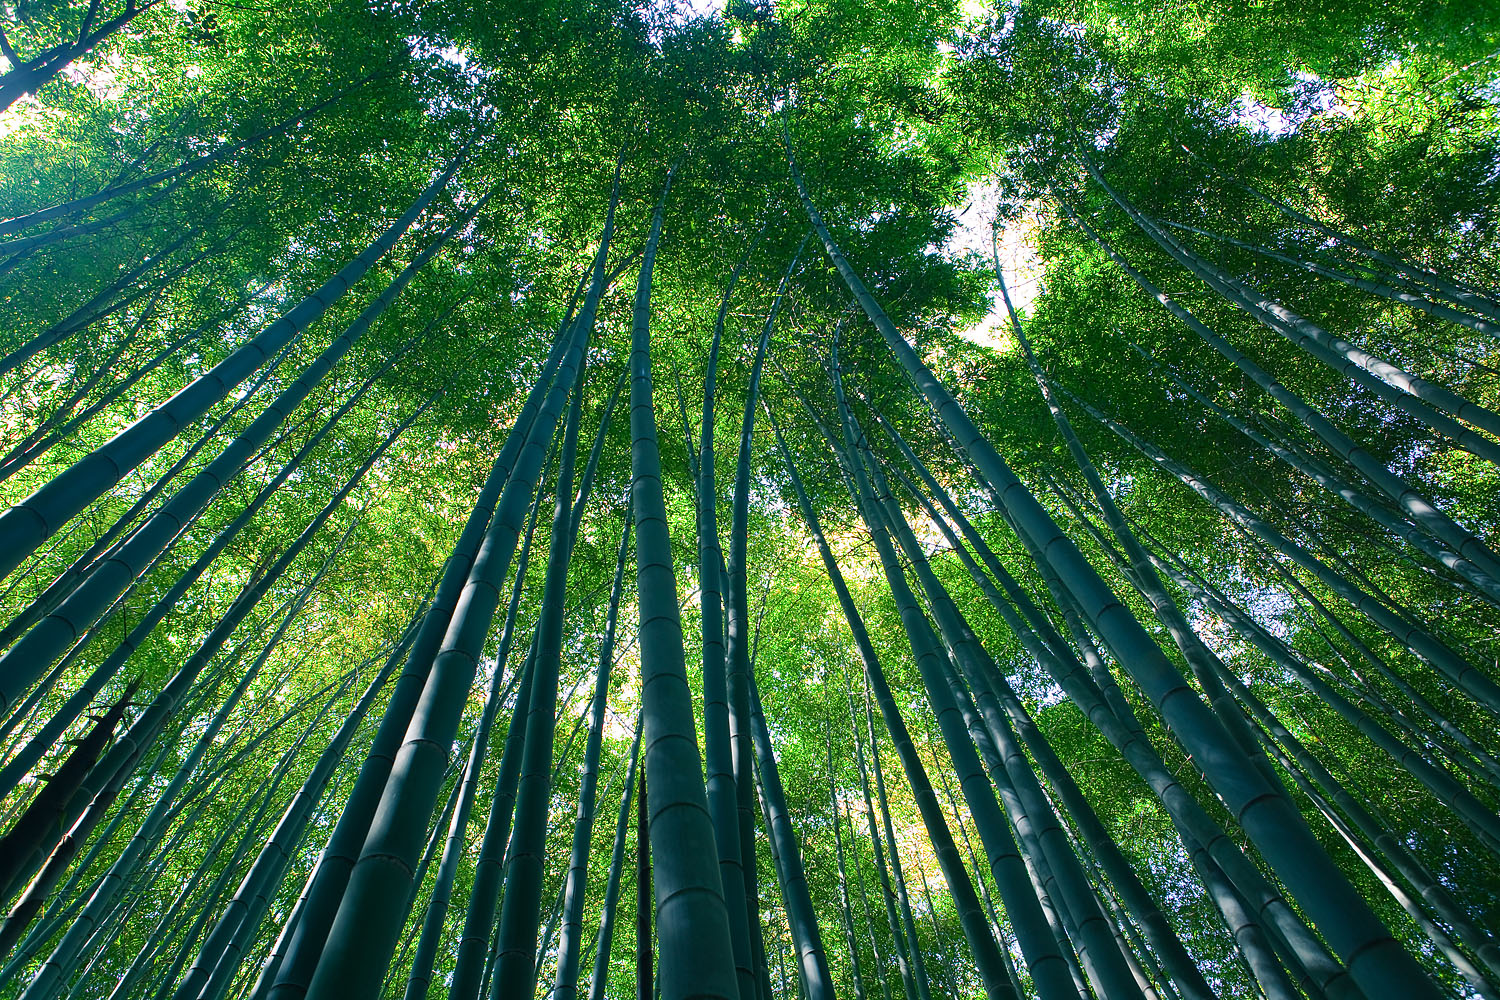 Sagano Bamboo forest, Arashiyama, Kyoto- Surreal places to visit